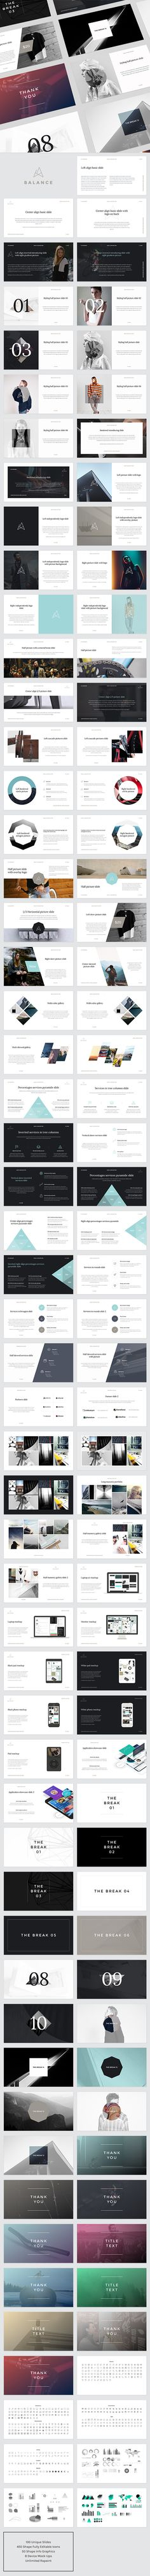 Explore more than presentation templates to use for PowerPoint, Keynote, infographics, pitchdecks, and digital marketing. Keynote Presentation, Design Presentation, Powerpoint Presentation Templates, Keynote Template, Presentation Slides, Powerpoint Presentations, Business Presentation, Web Design, Slide Design